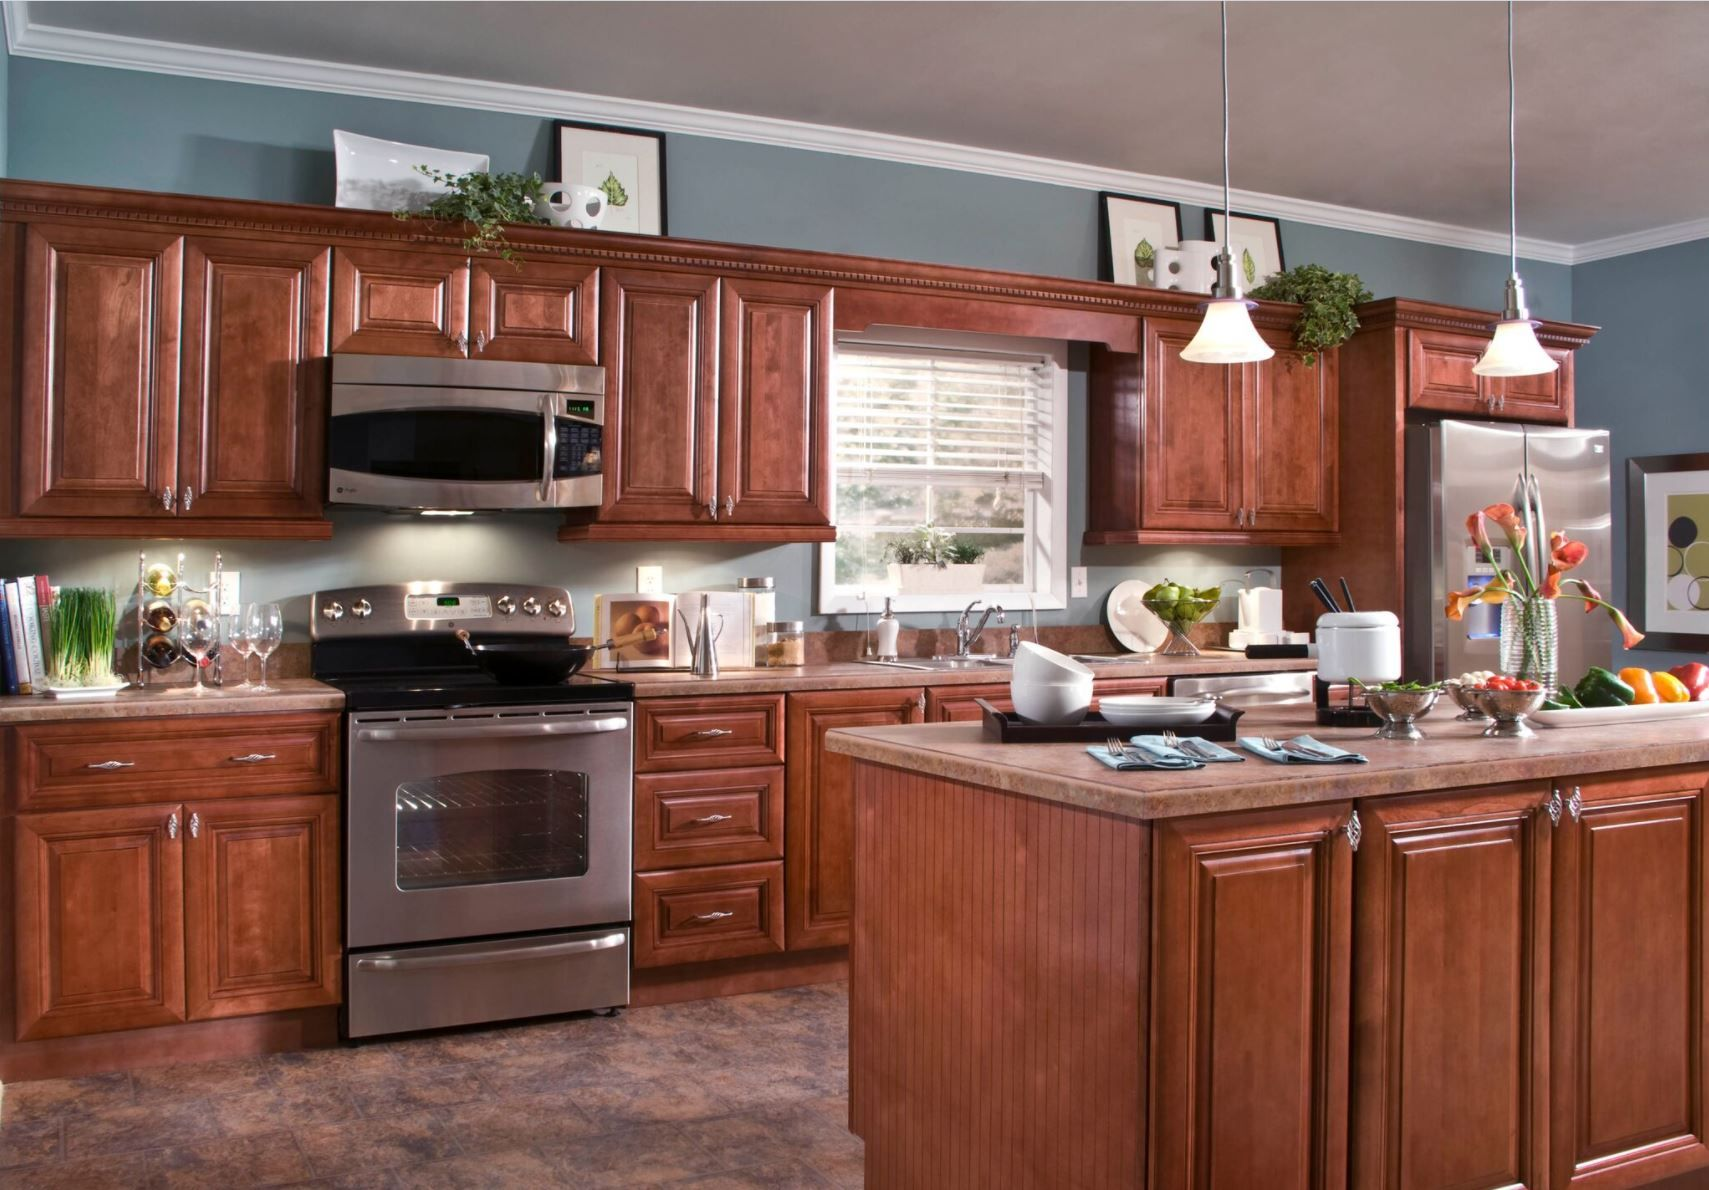 Shop Our Kitchen Cabinets Department To Customize Your Lyndhurst Base Cabinets In Cabernet Today A Small Kitchen Cabinet Design Tuscan Kitchen Kitchen Cabinets